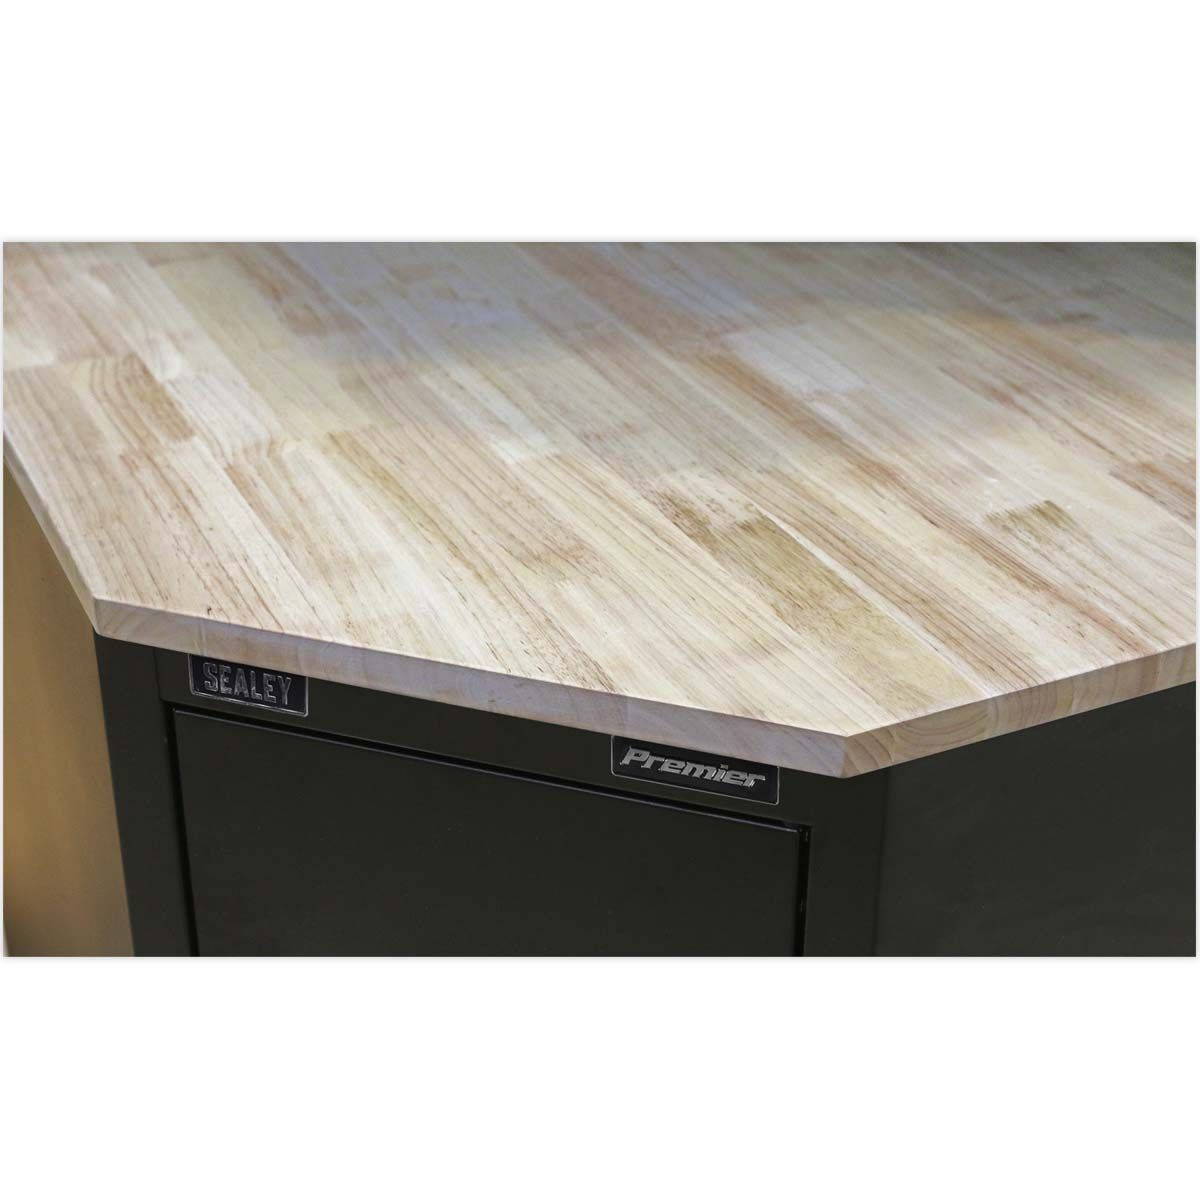 Sealey Premier Oak Corner Worktop 930mm